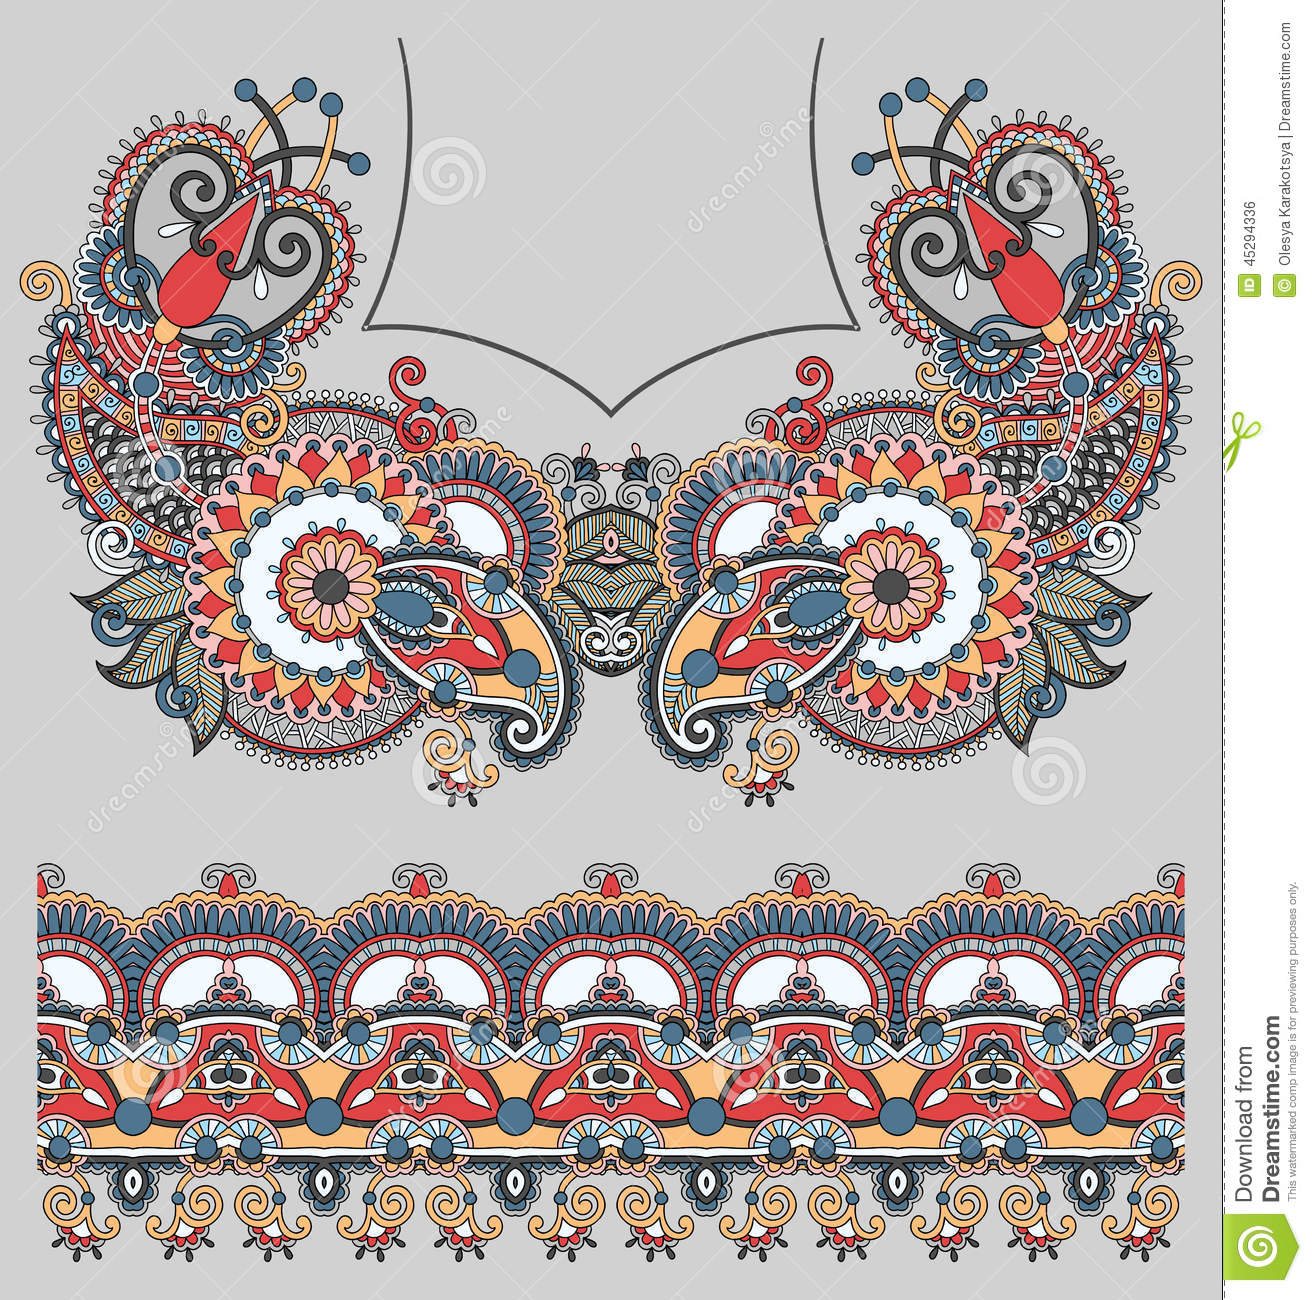 Neckline ornate floral paisley embroidery fashion stock Fashion embroidery designs